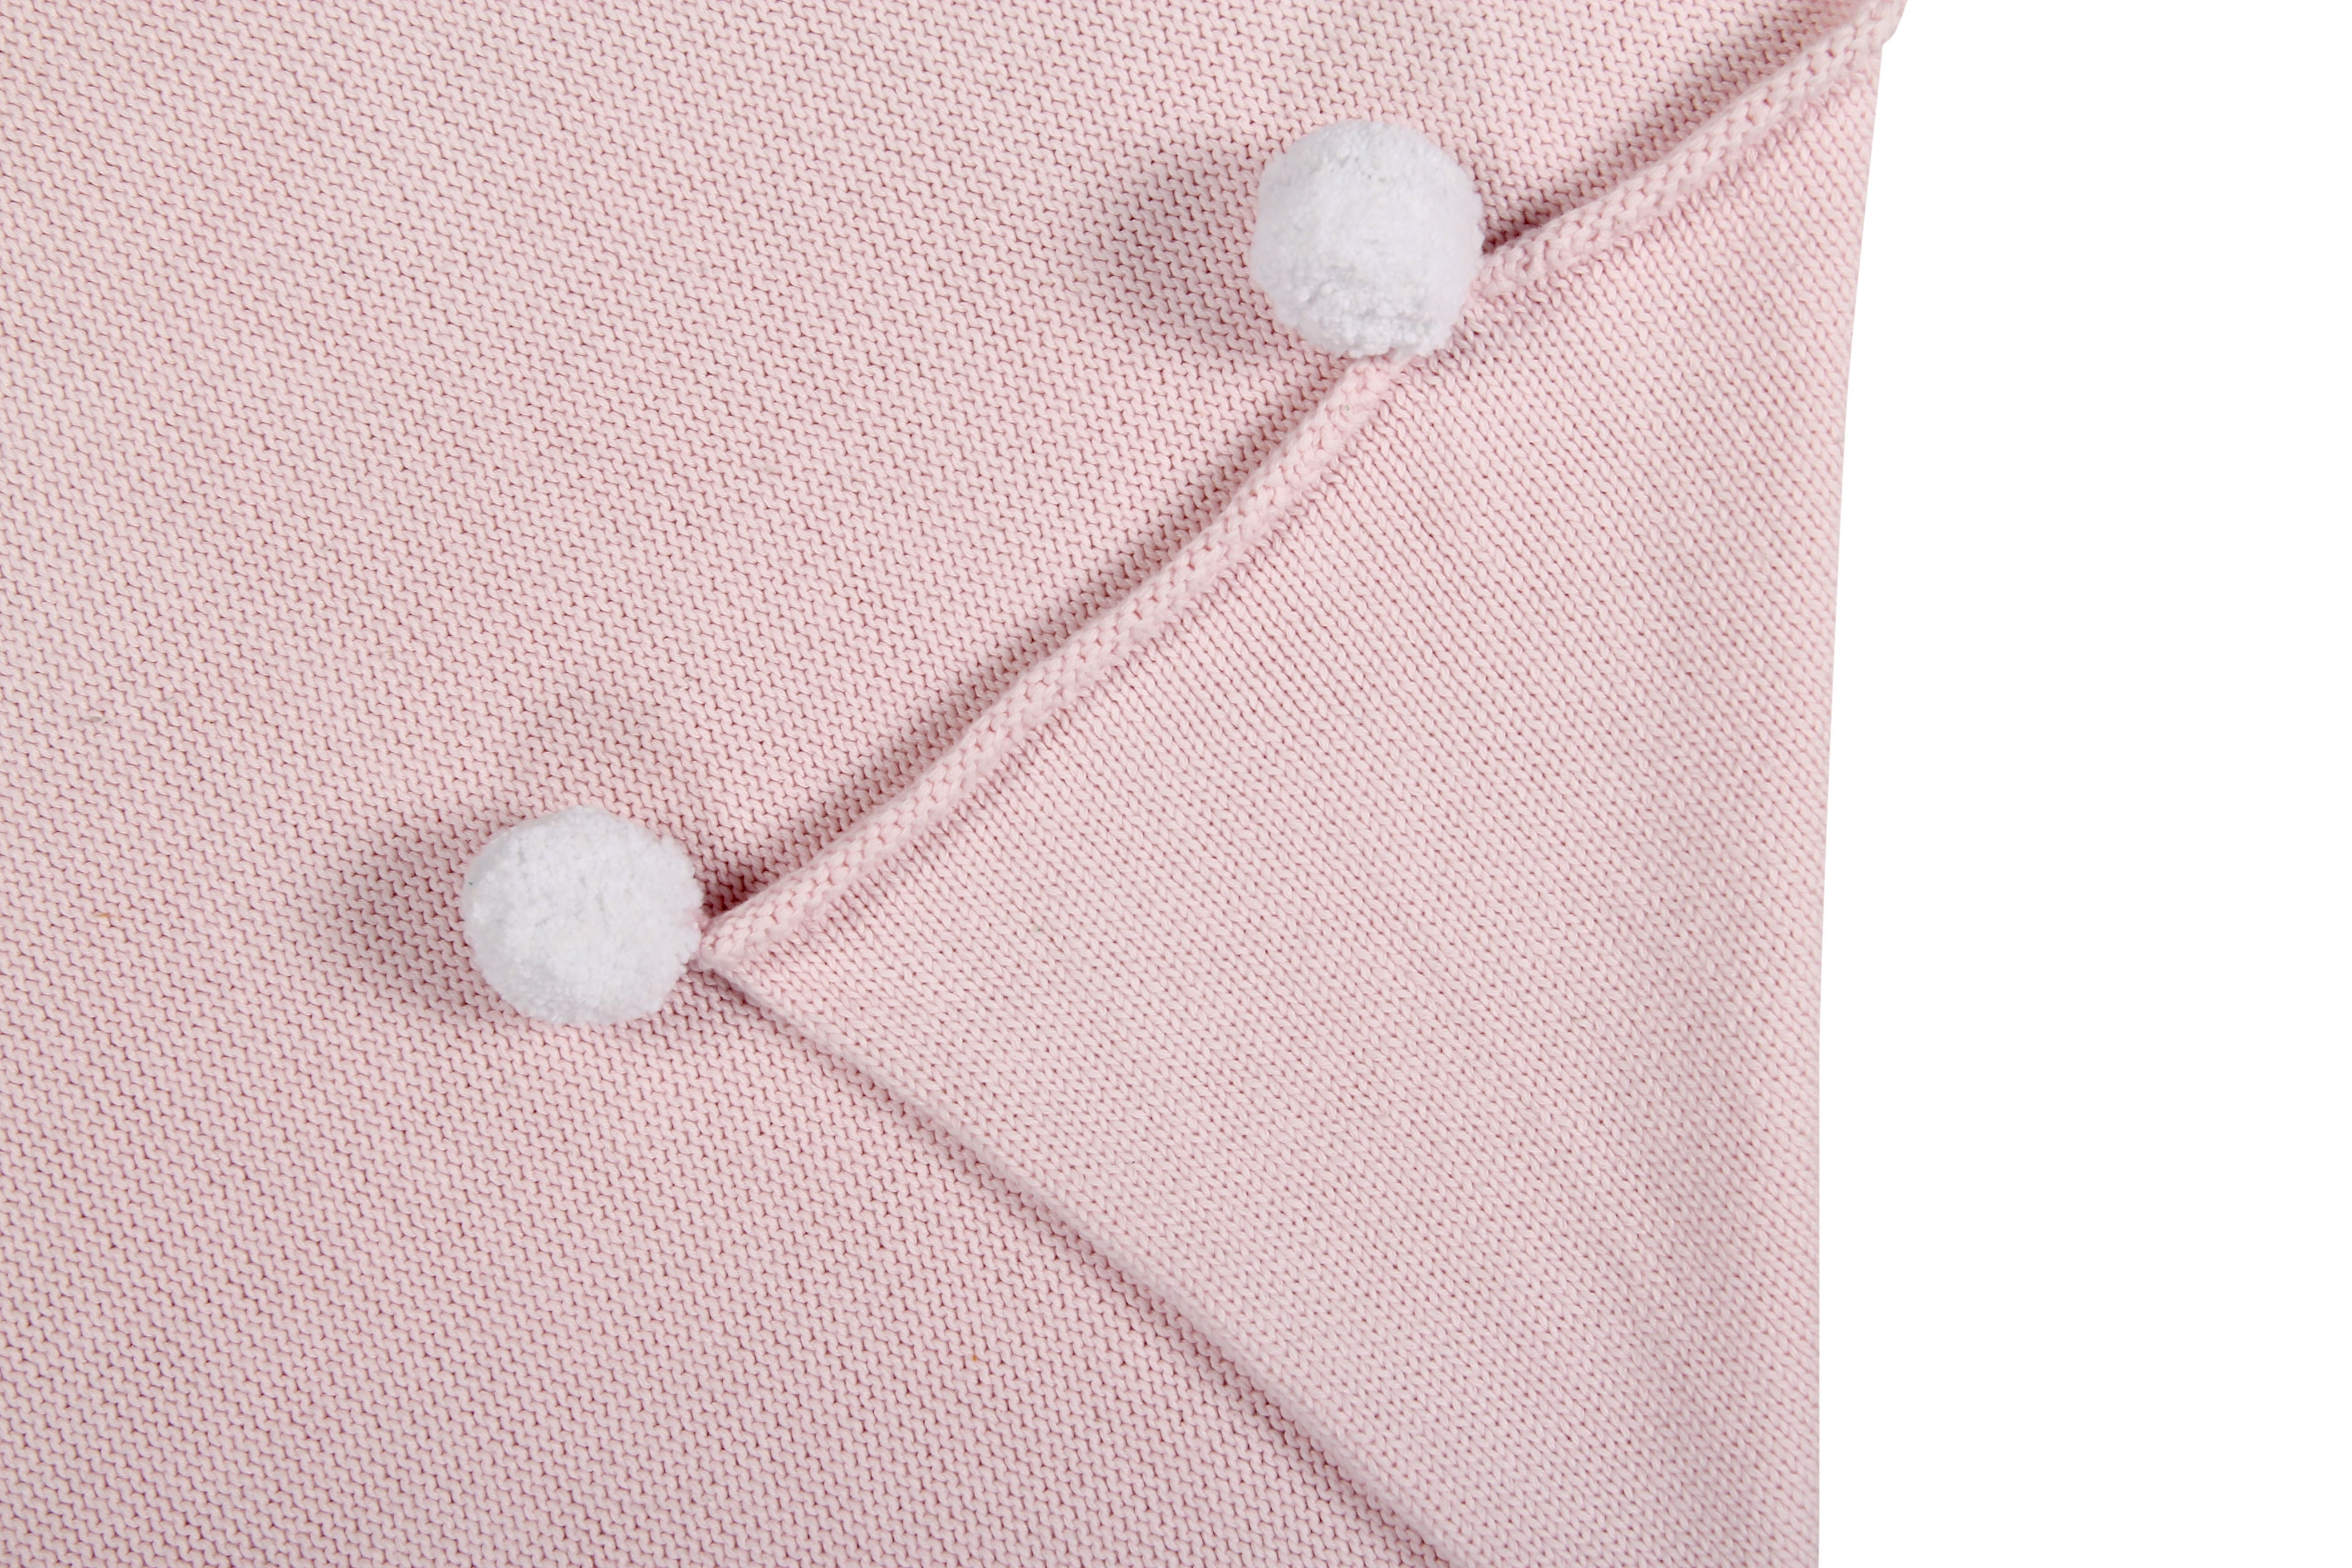 Bubbly Baby Blanket in Soft Pink design by Lorena Canals